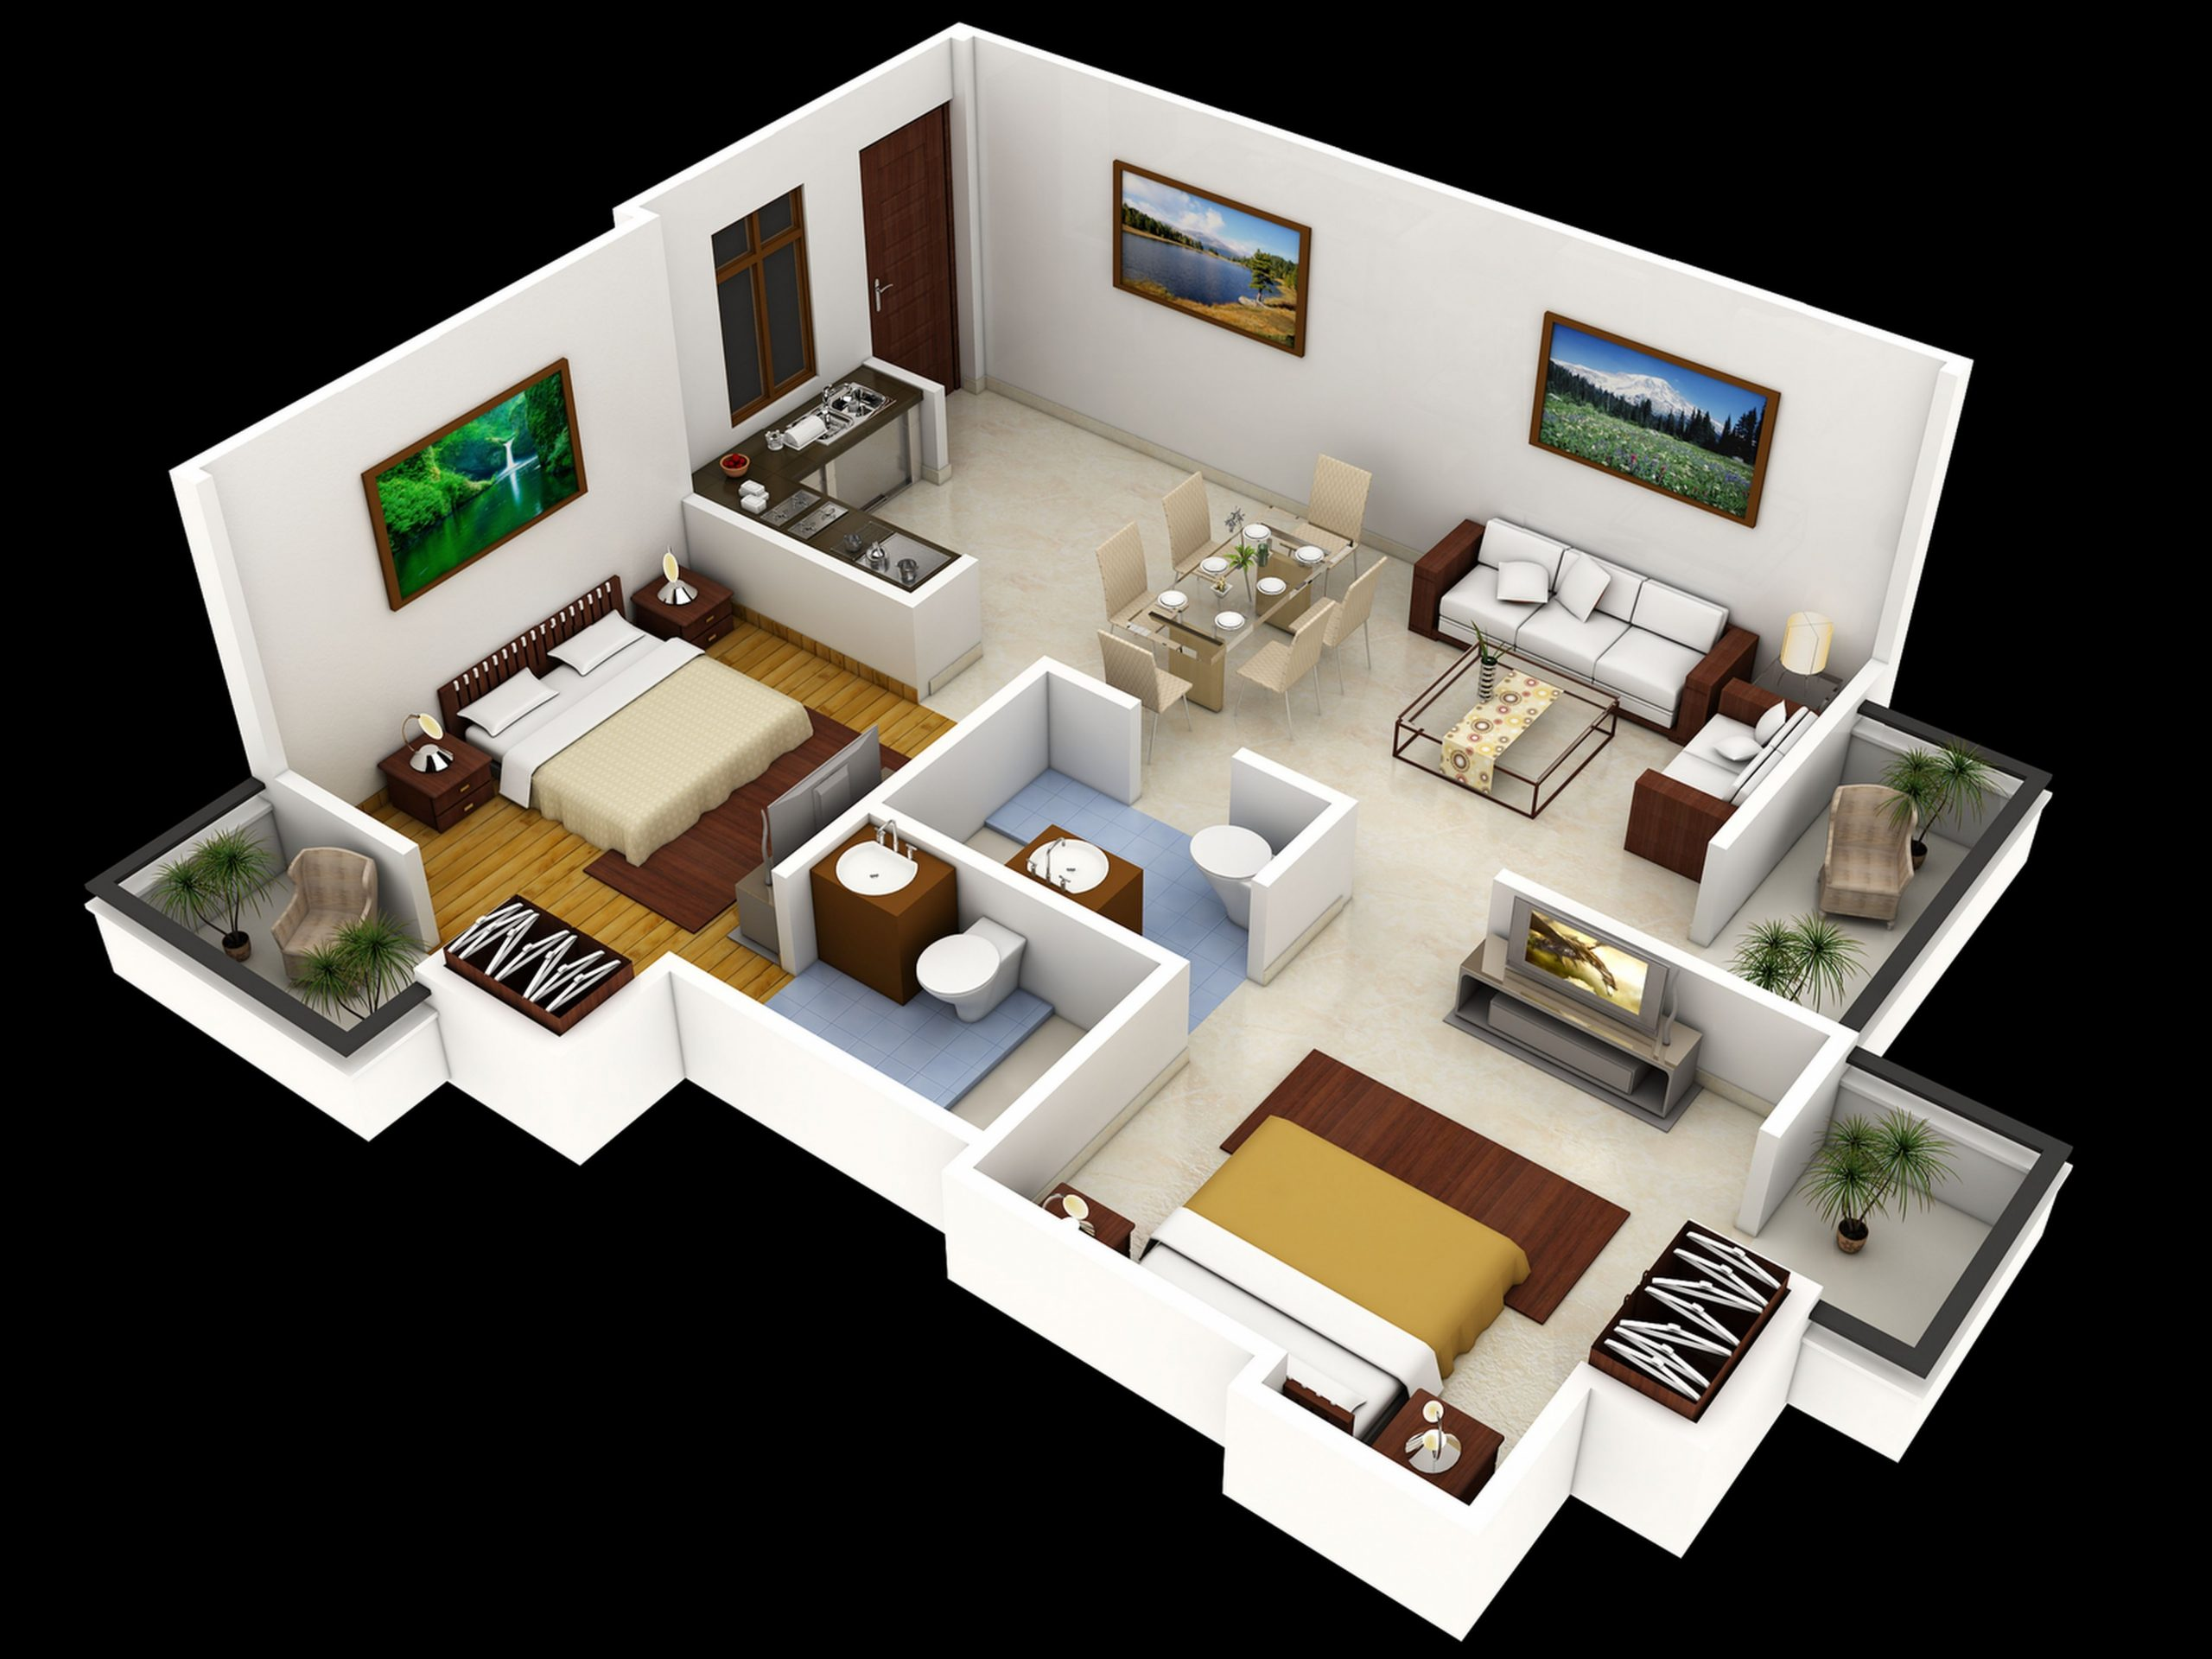 home design online house design interior design decorating design  - Apartment Design Online Free